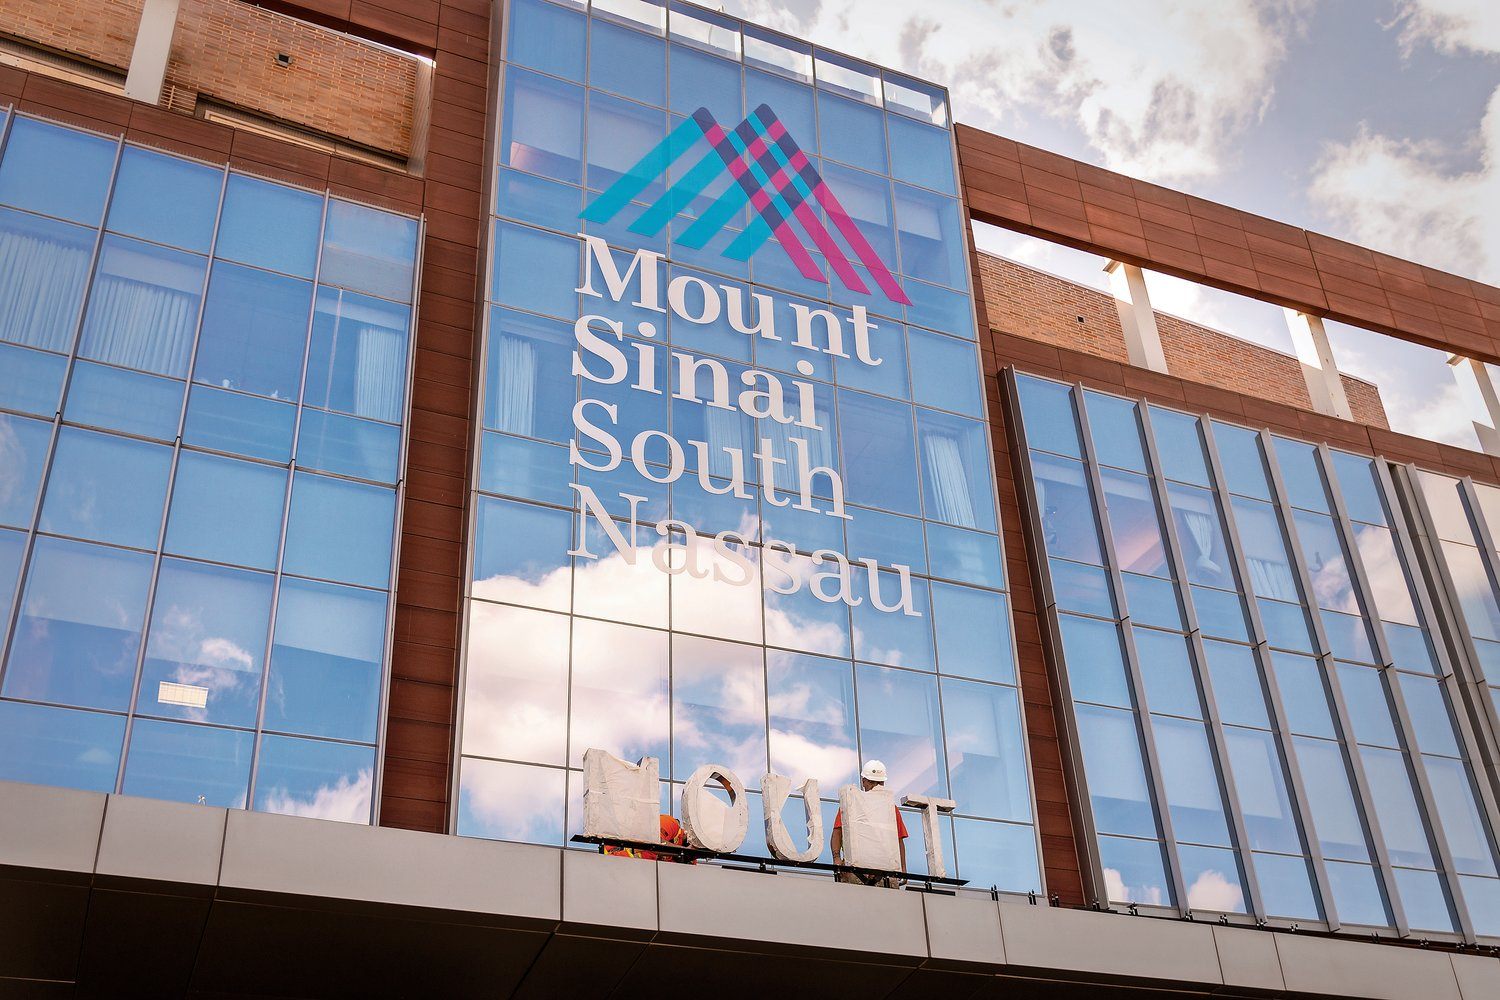 Mount Sinai South Nassau has suspended visitation for its Emergency Departments at its Oceanside and Long Beach campuses.